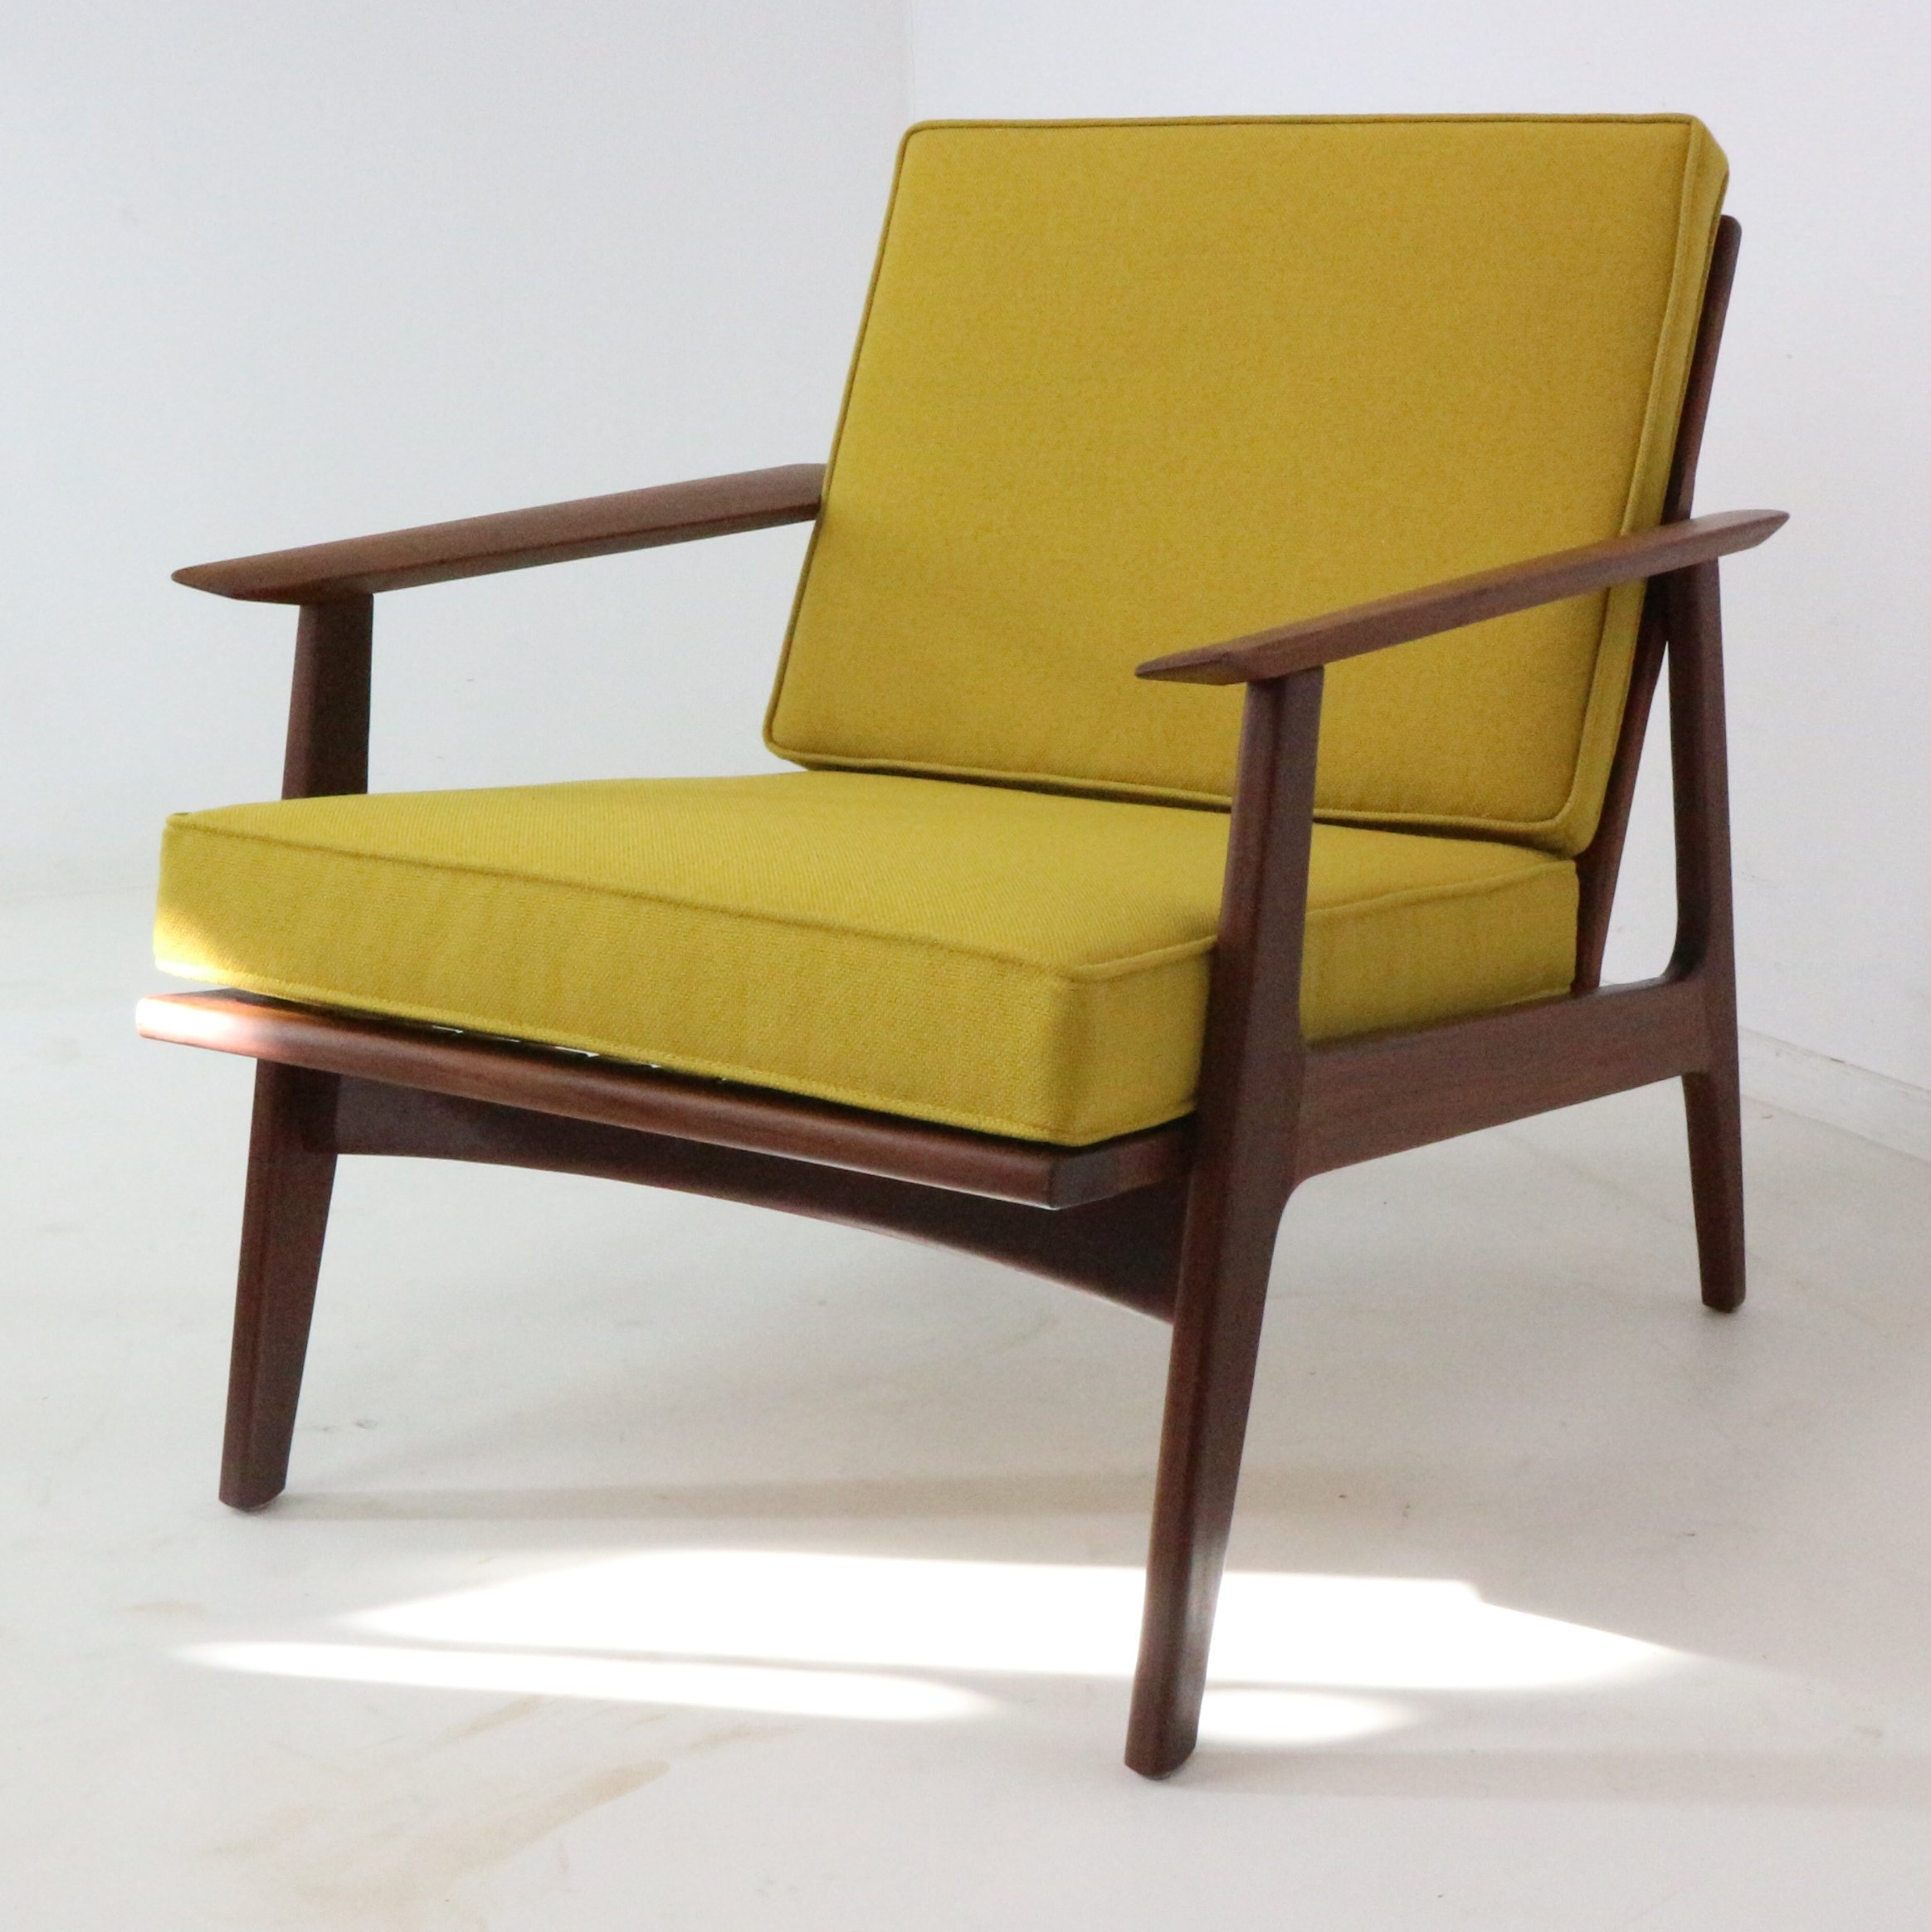 Modernist Danish Teak Armchair, 1960s